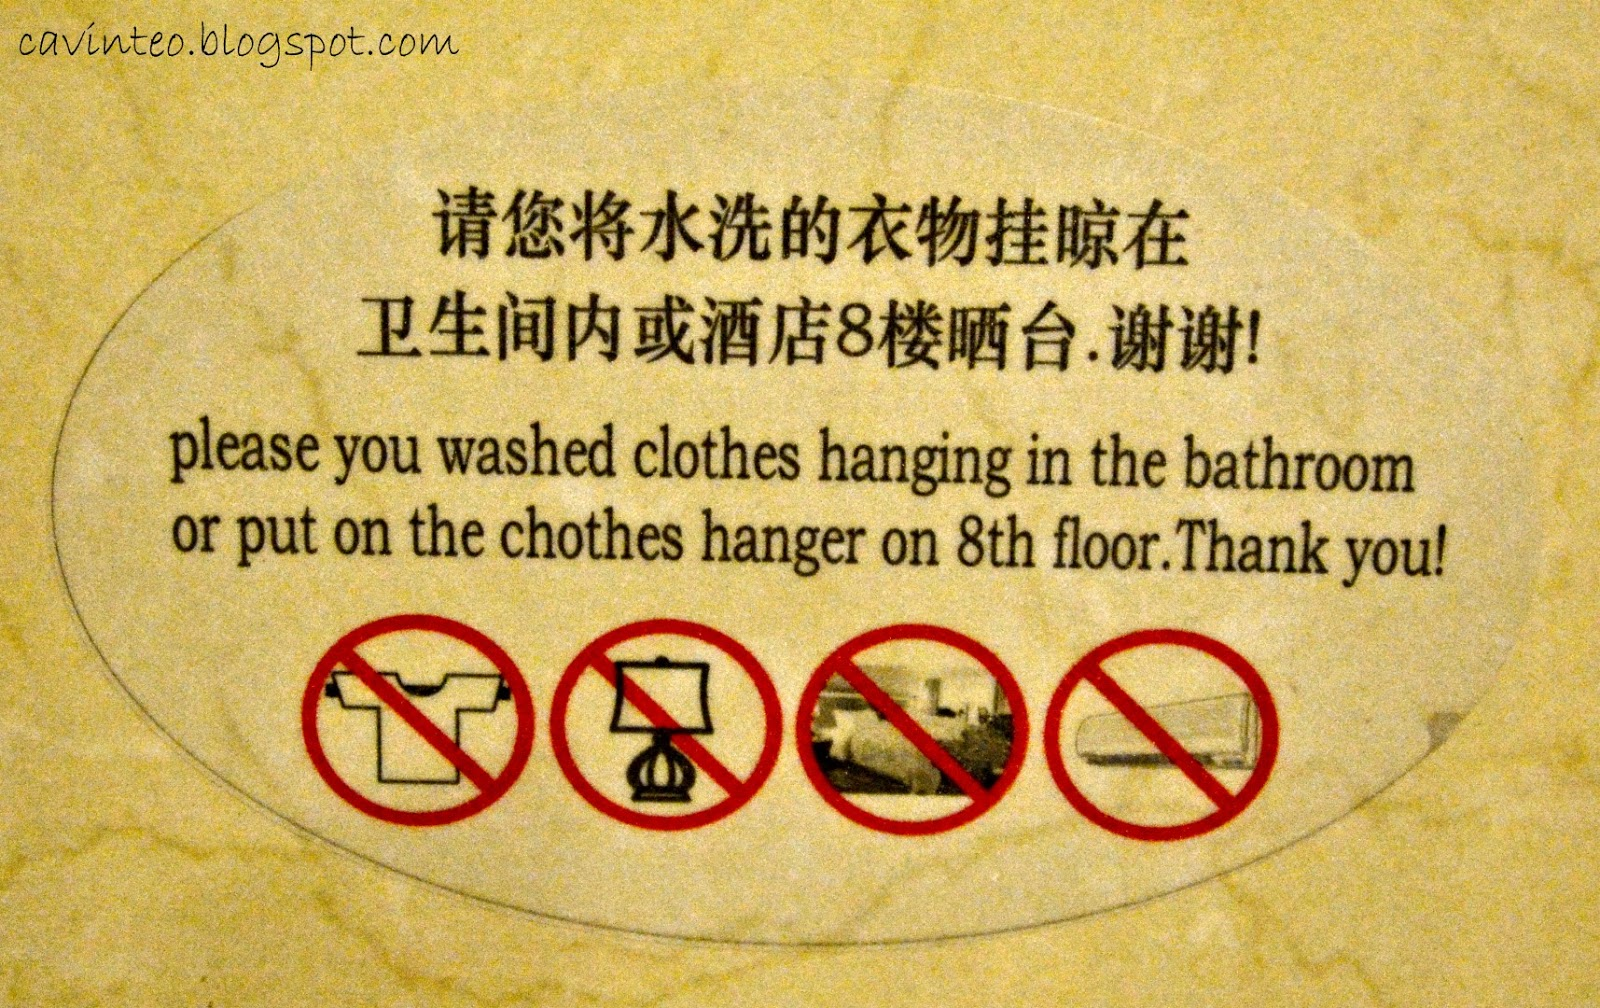 Entree kibbles day 5 forward to guilin city part of Bathroom in chinese characters